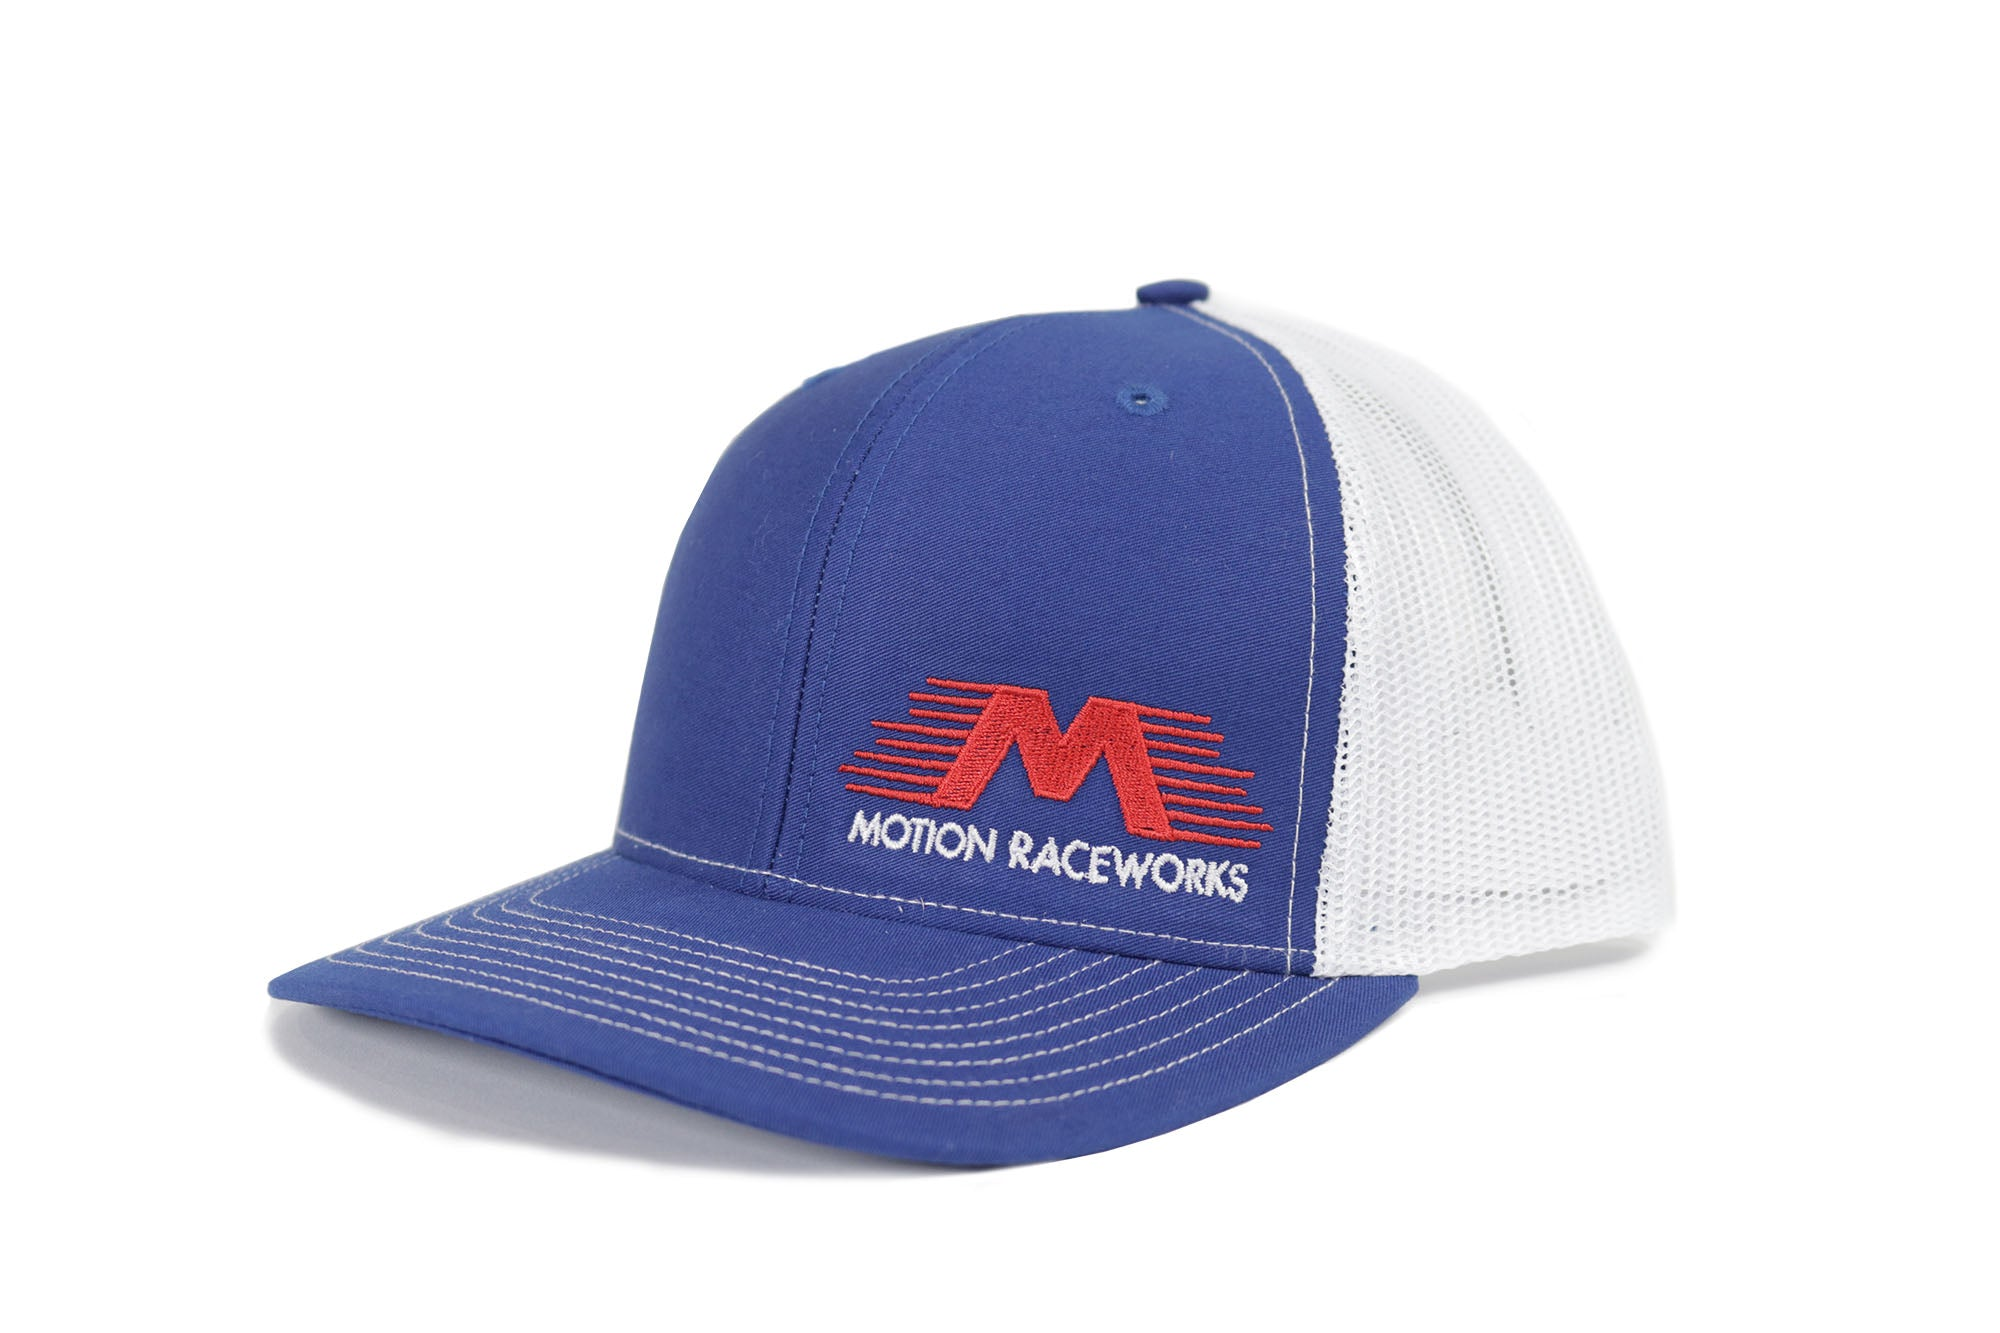 1776 Edition Motion Snapback Hat - Motion Raceworks